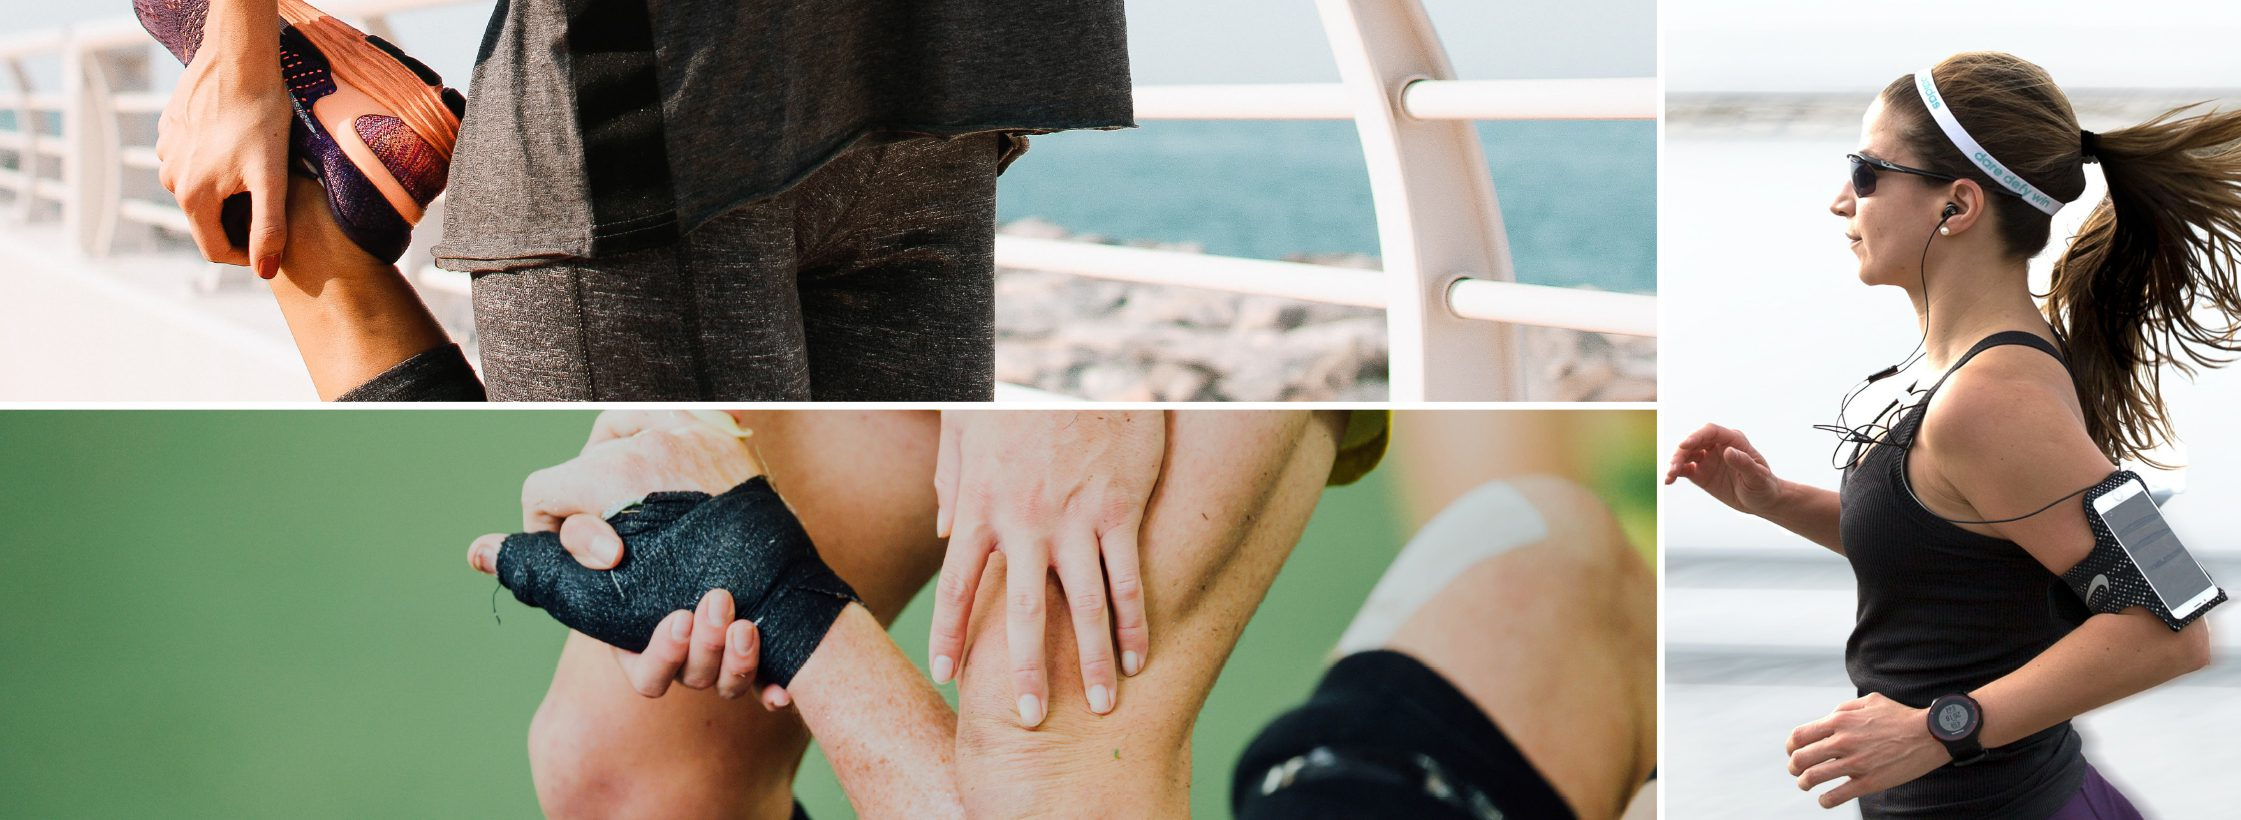 Sports Medical Product Specialist